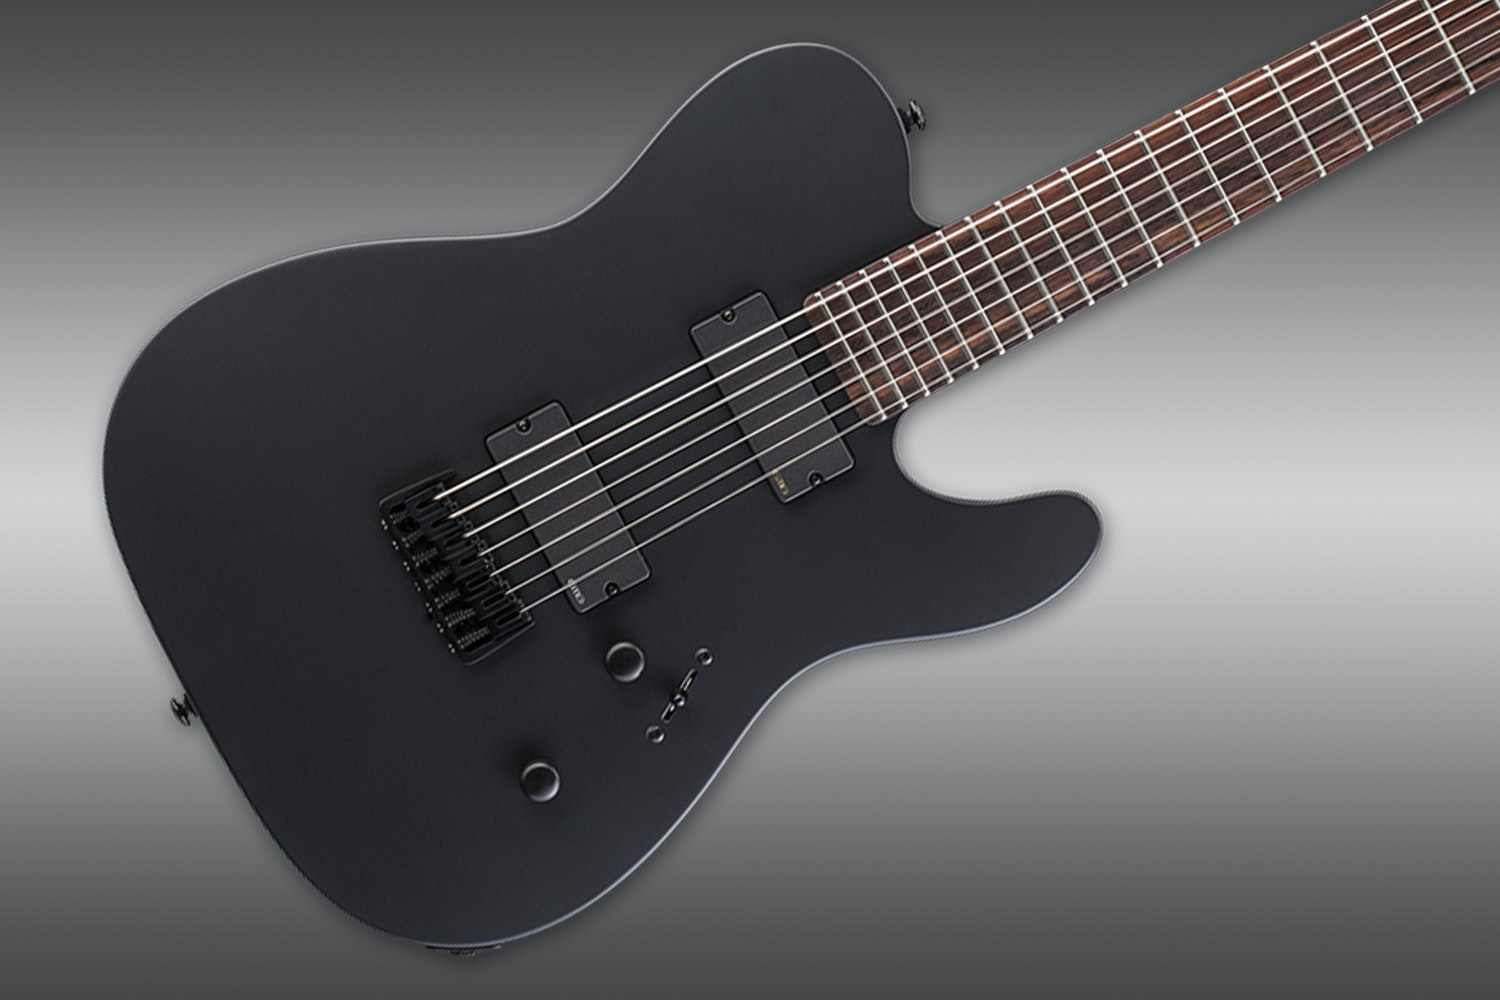 ESP LTD TE-407 Black Satin Guitar